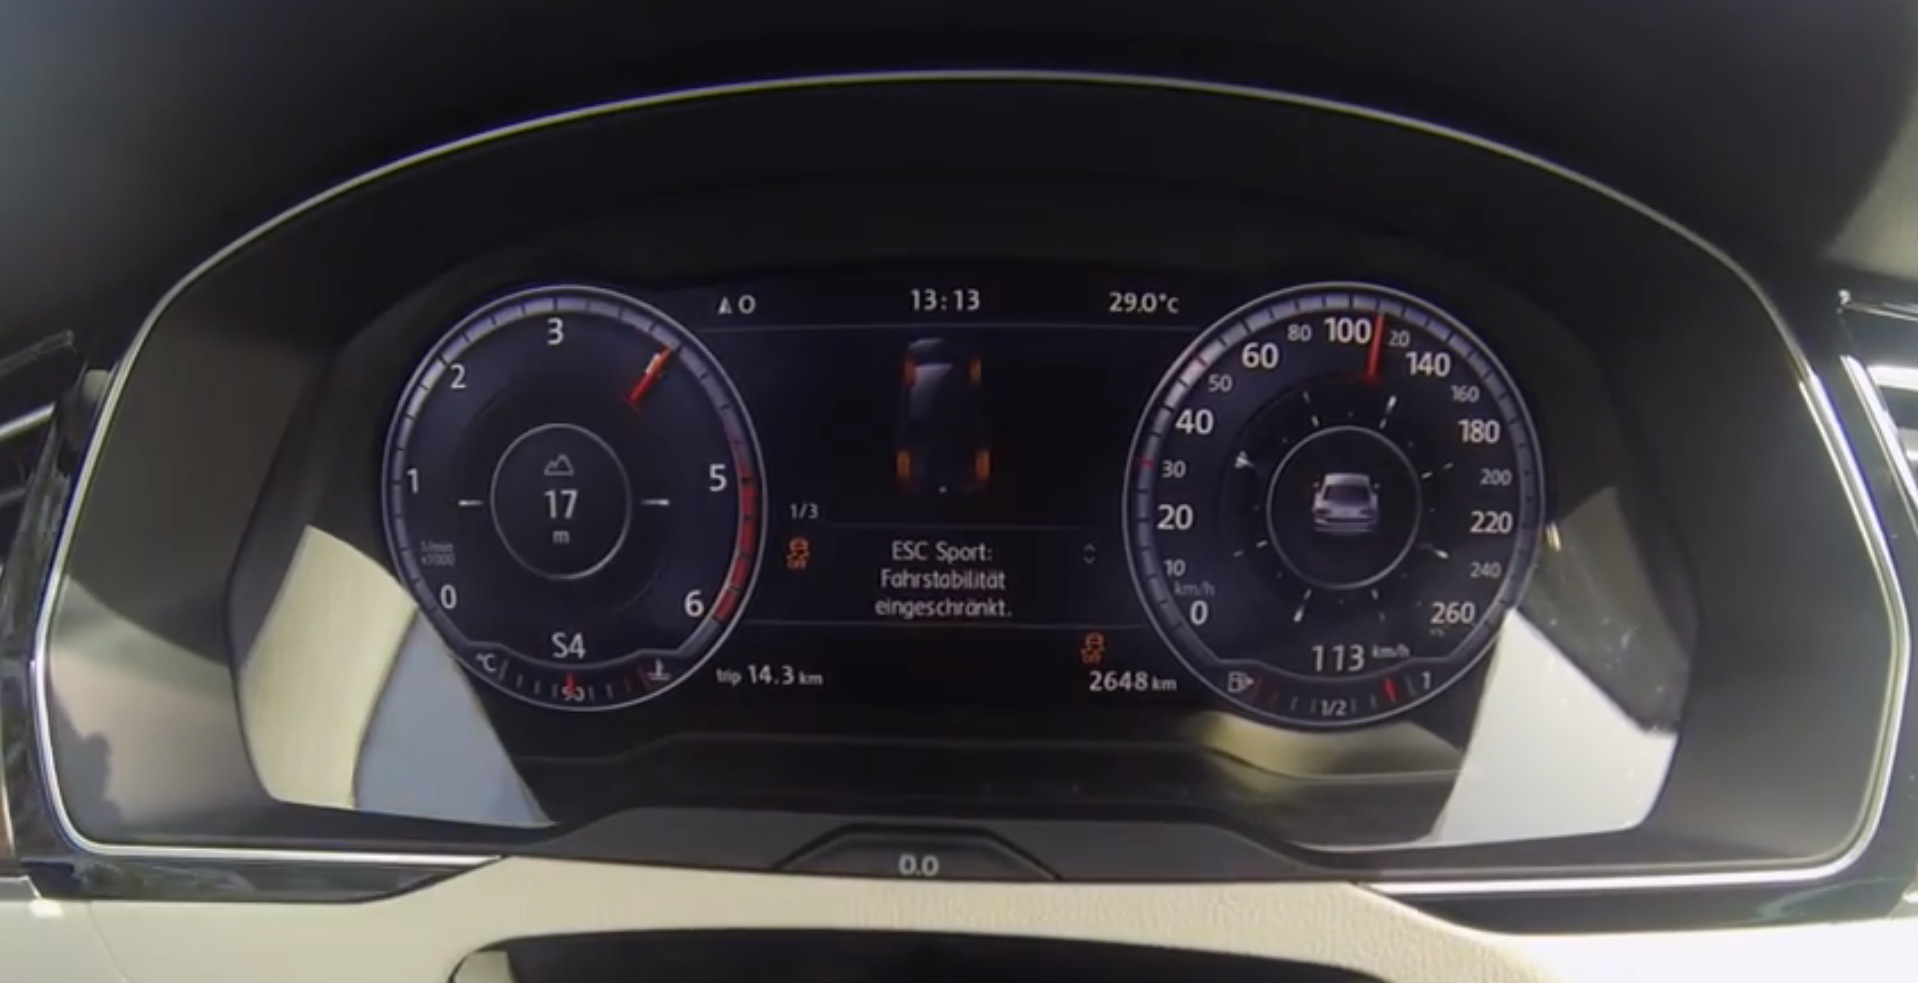 Vw Passat B8 2 0 Bitdi 240 Hp Acceleration Test Very